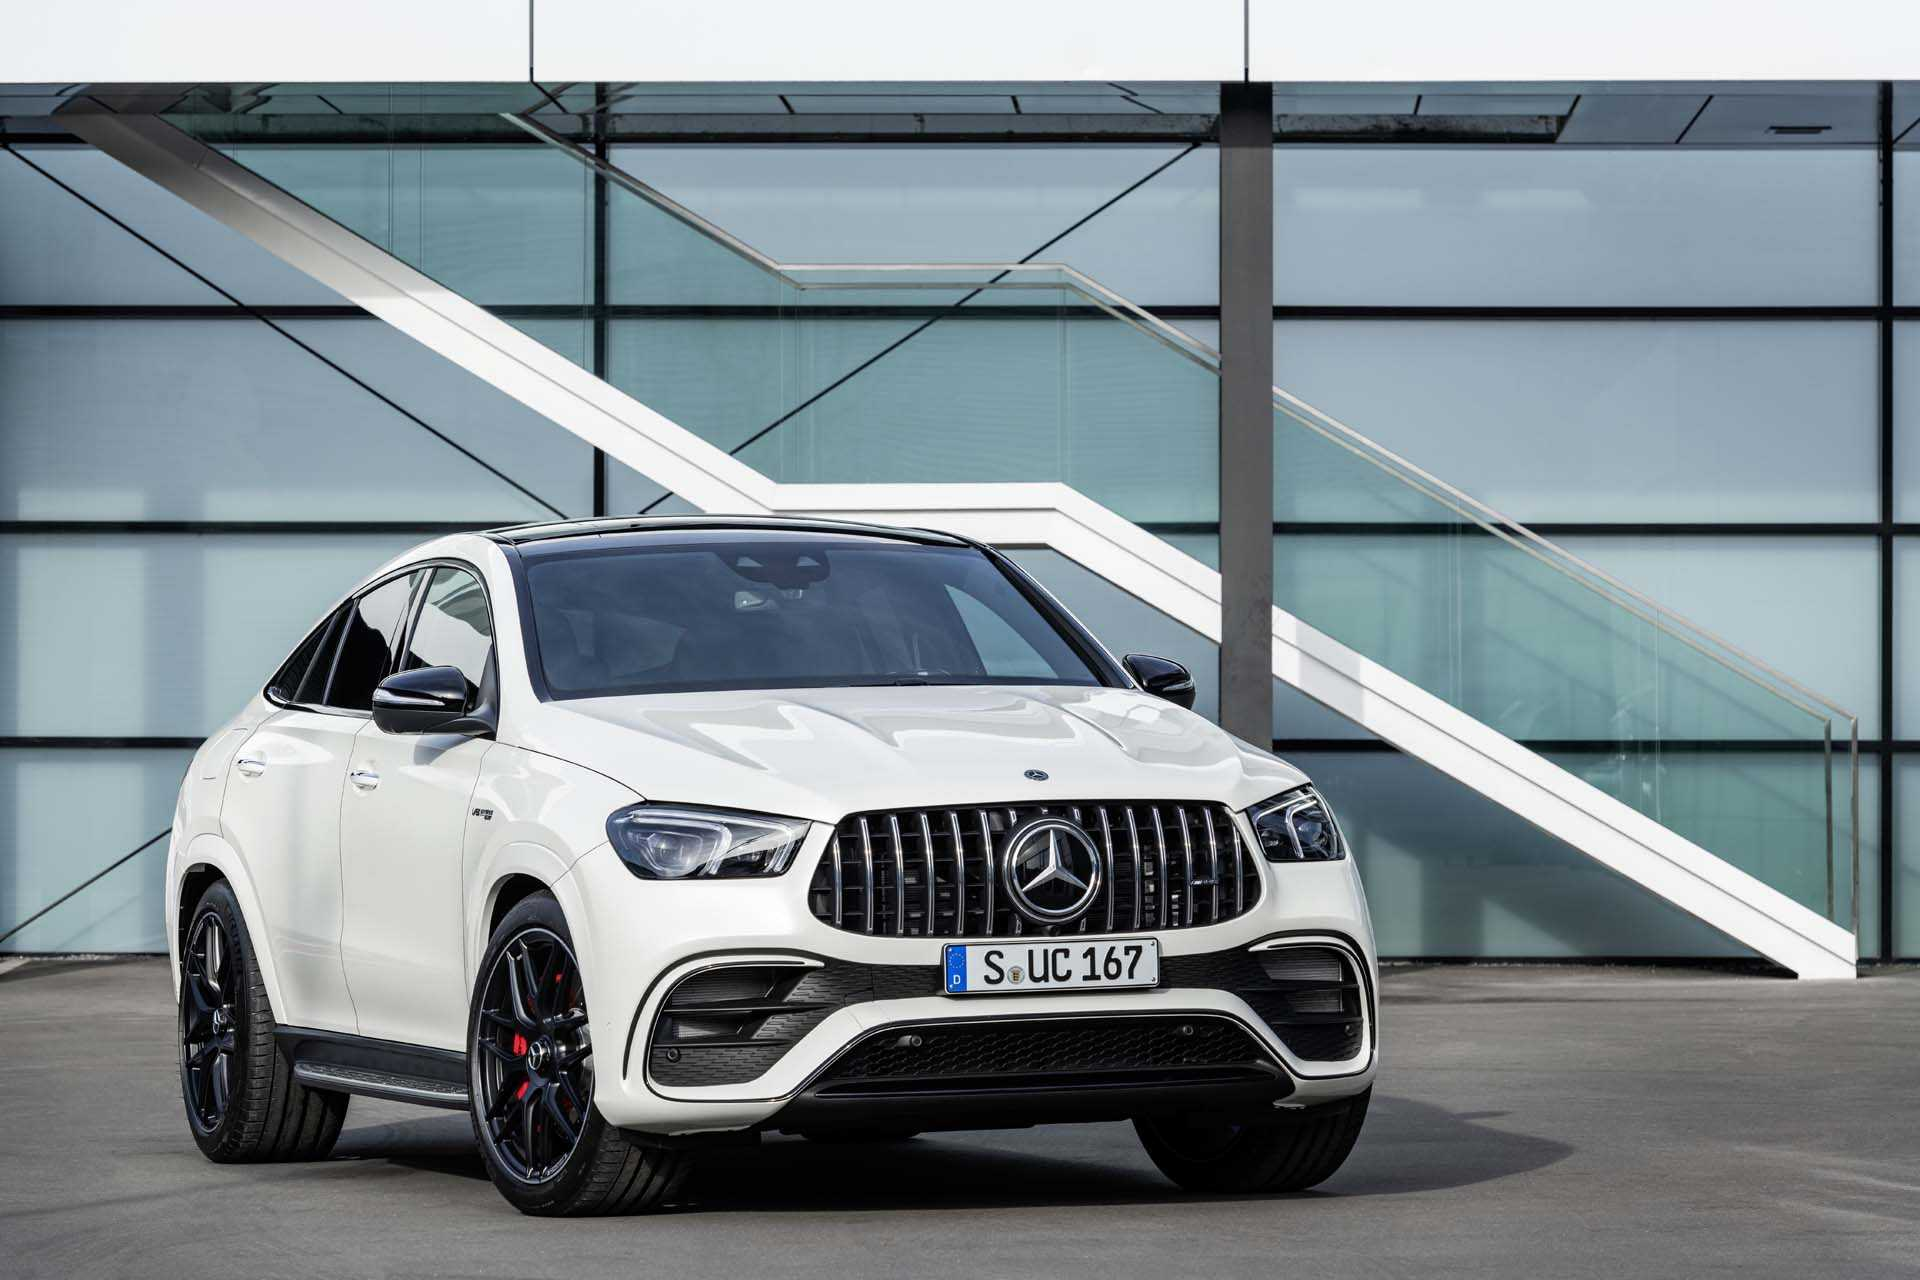 2021 Mercedes AMG GLE63 S Coupe Pricing Starts at $117,050